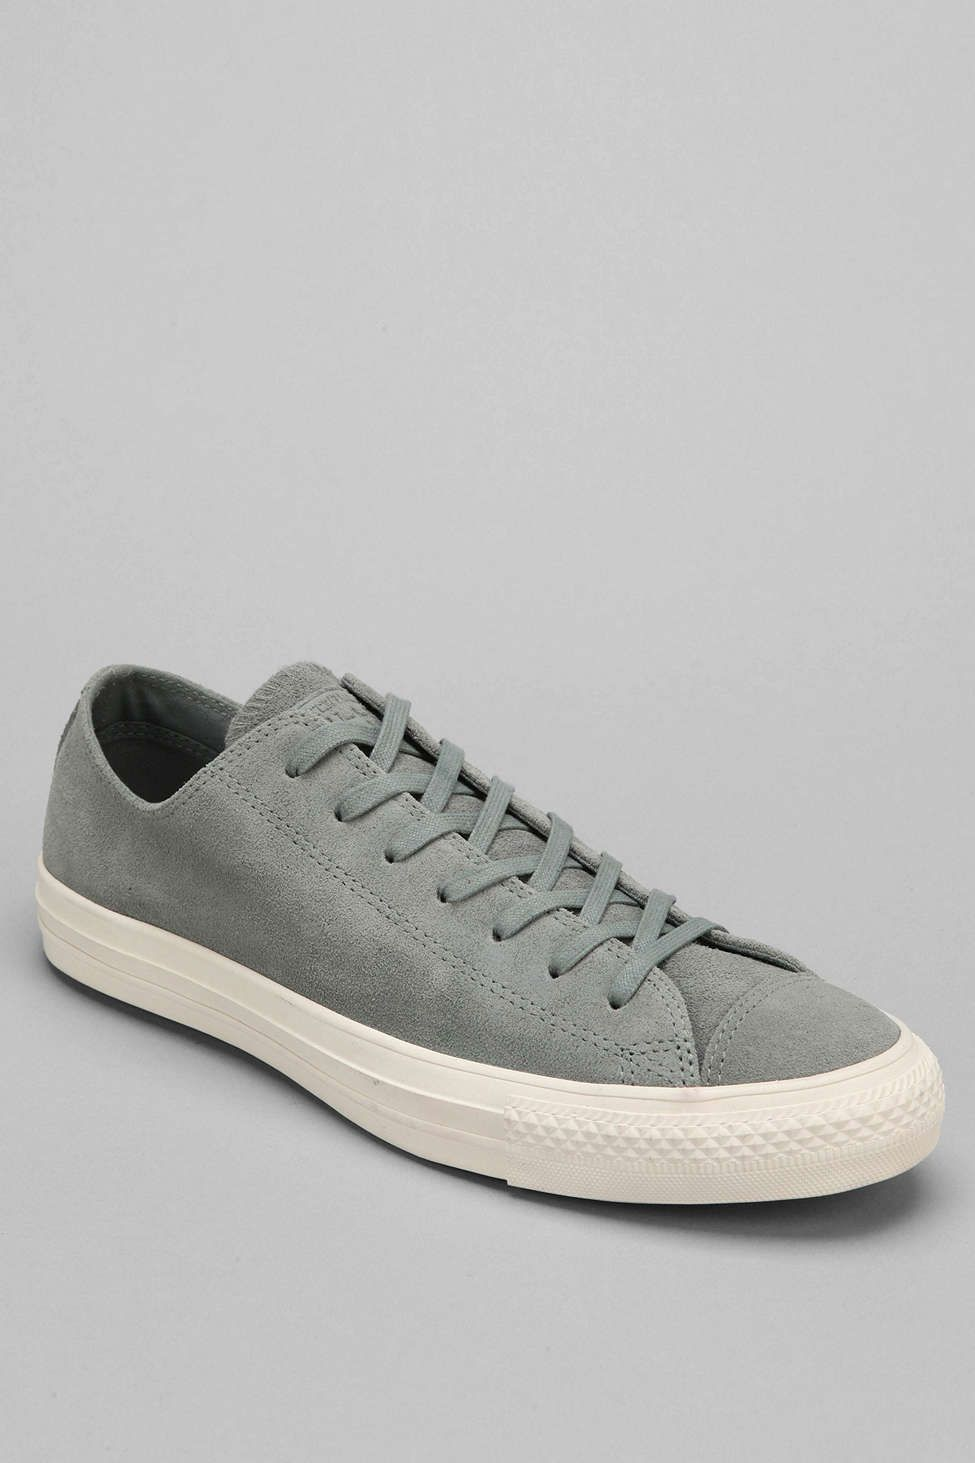 Converse Chuck Taylor All Star Burnt Suede Low-Top Men s Sneaker ... 4f6cc7ad8